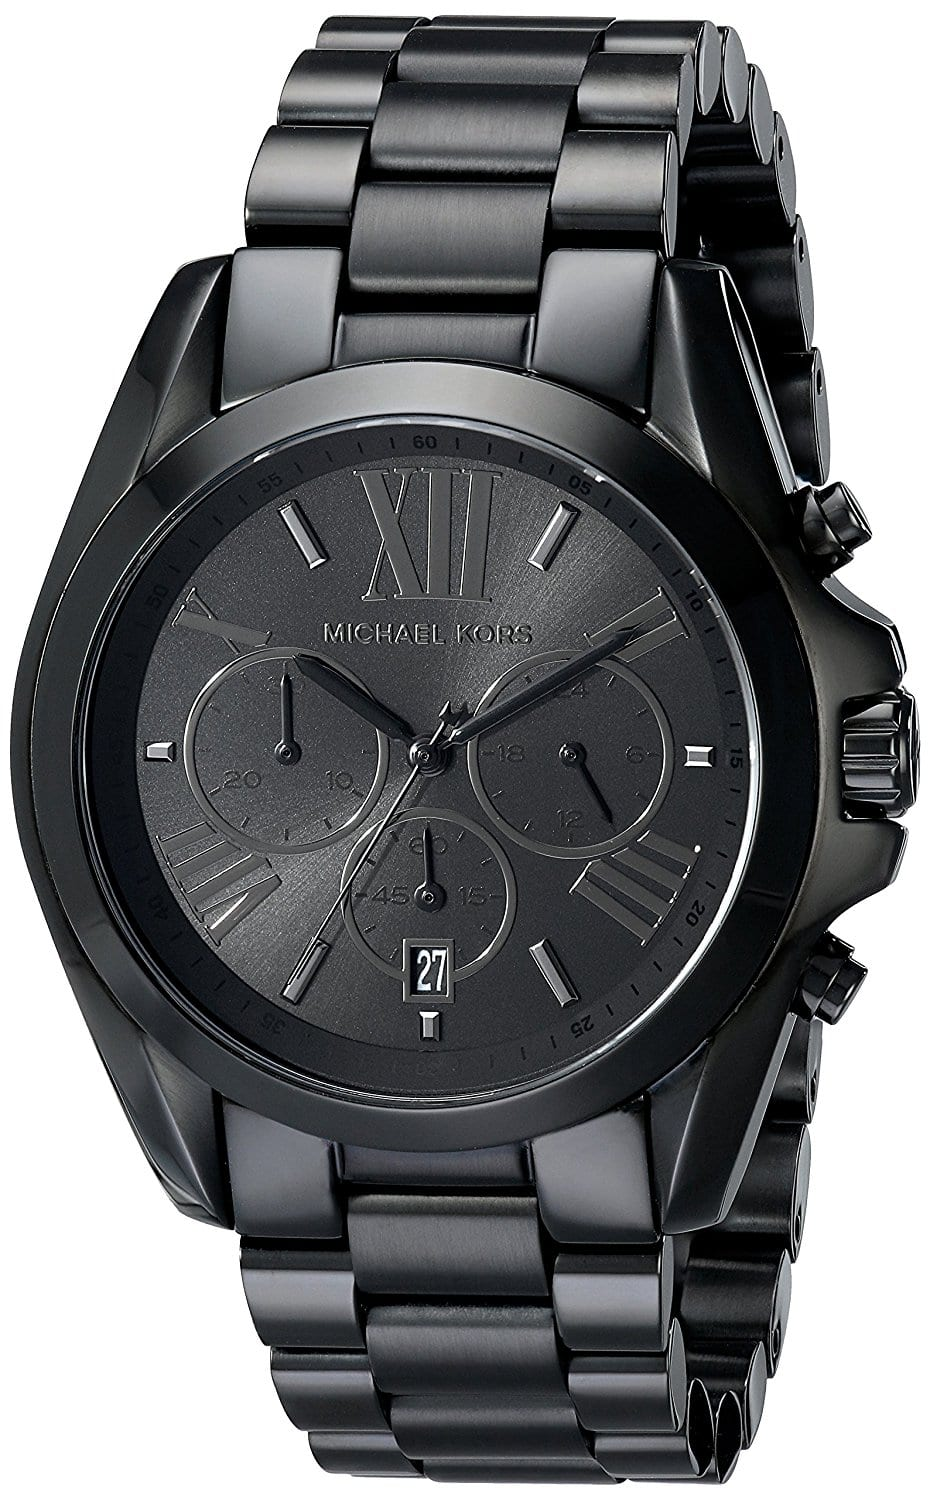 Michael Kors Men's Bradshaw Chronograph Watch w/ Stainless Steel Bracelet $100 + Free Shipping